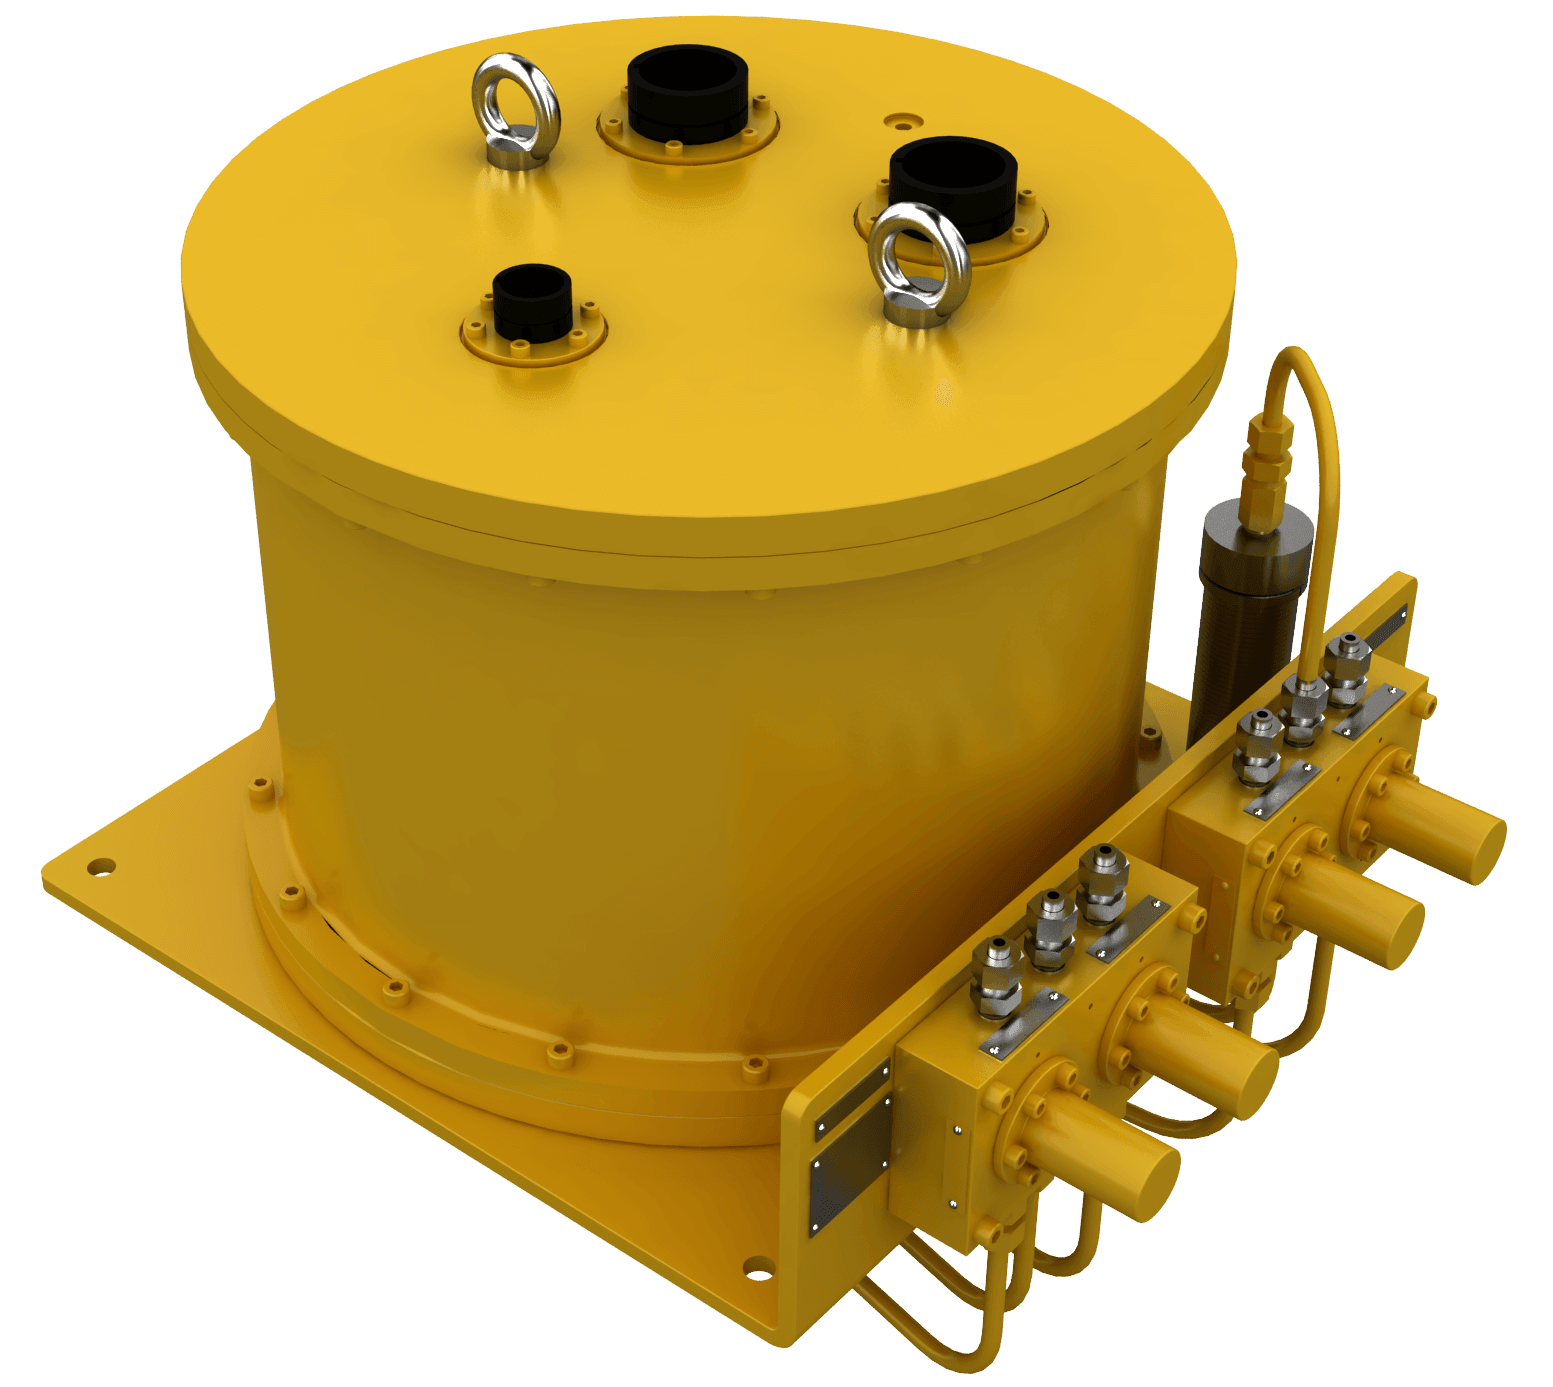 oceaneering, subsea control unit, subsea valves, control, connectors, additional lines, subsea, rotator